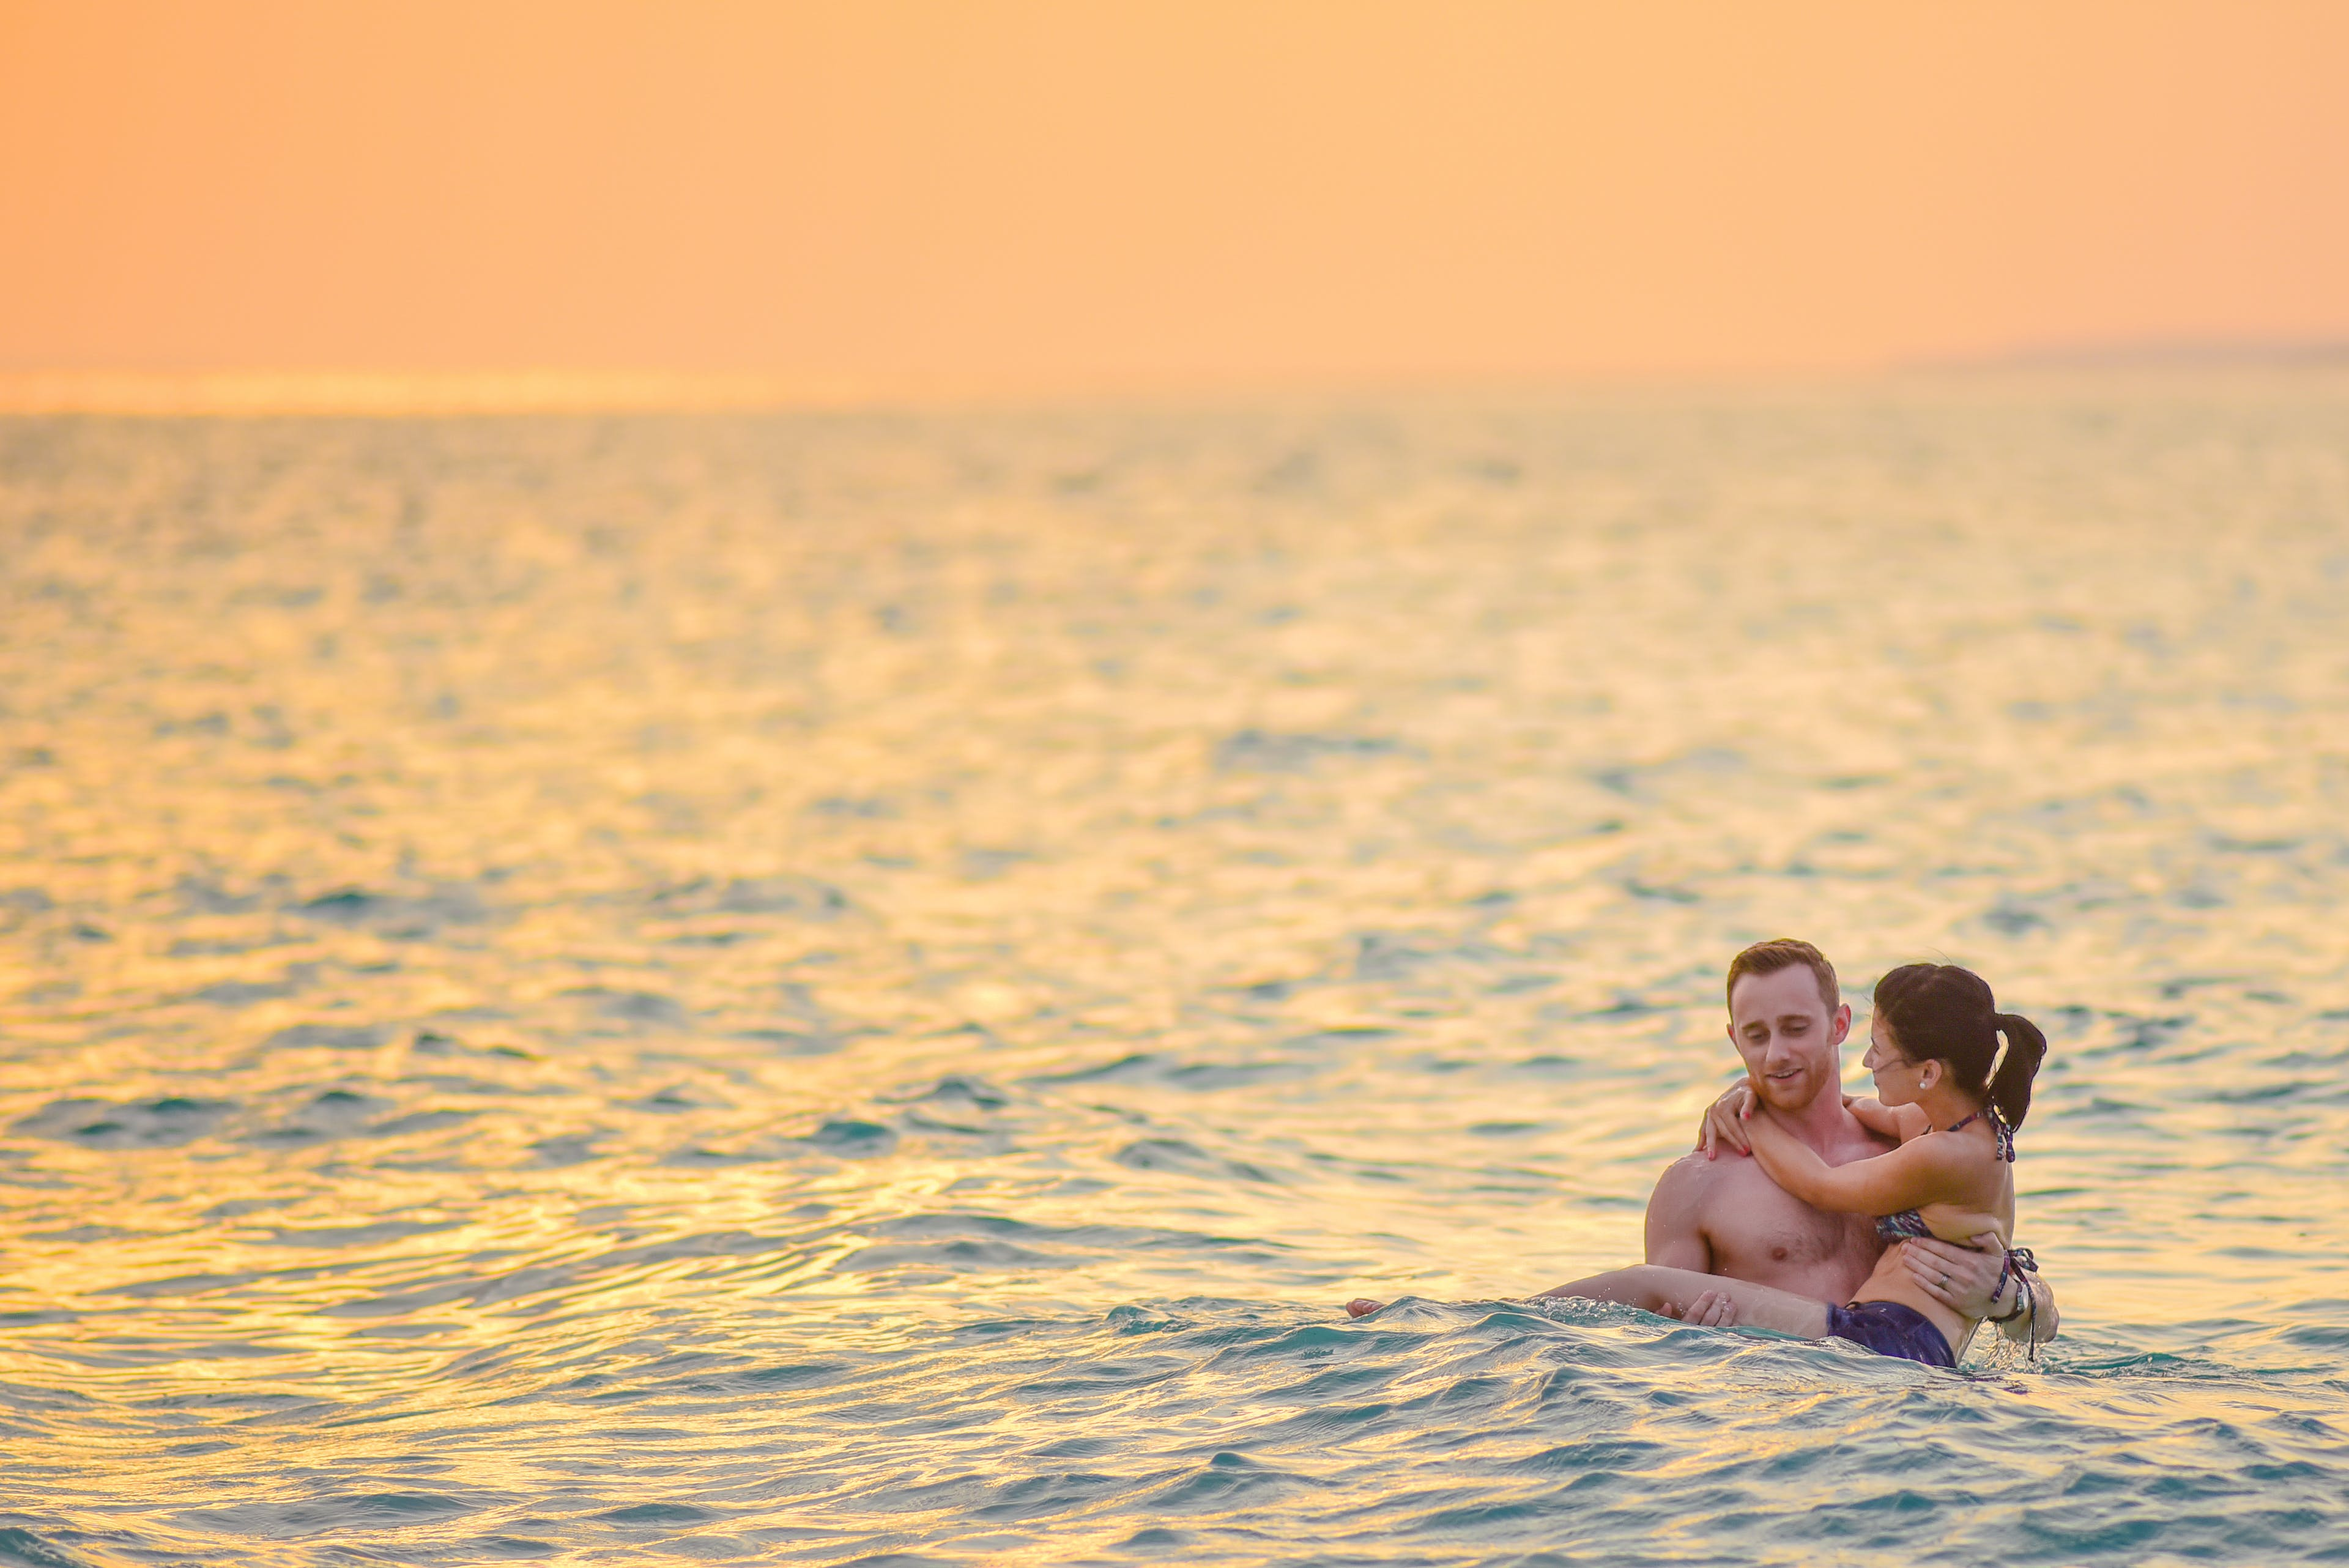 Man and Woman Swimming in a Beach